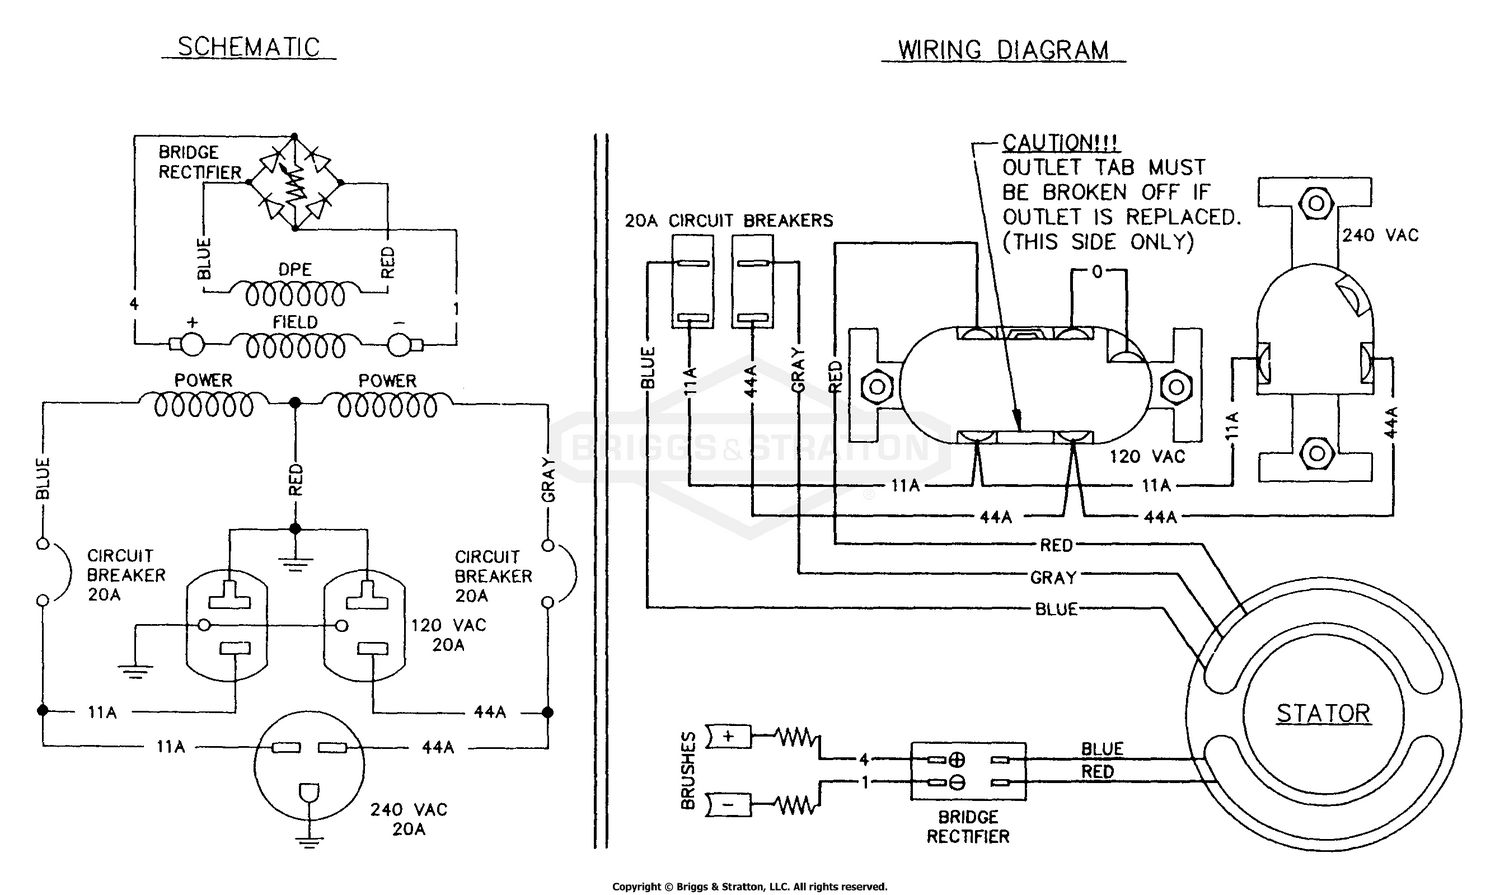 Briggs Amp Stratton Power Products Del 26072017021729 8971 4 120 Schematic Wiring Diagram Electrical